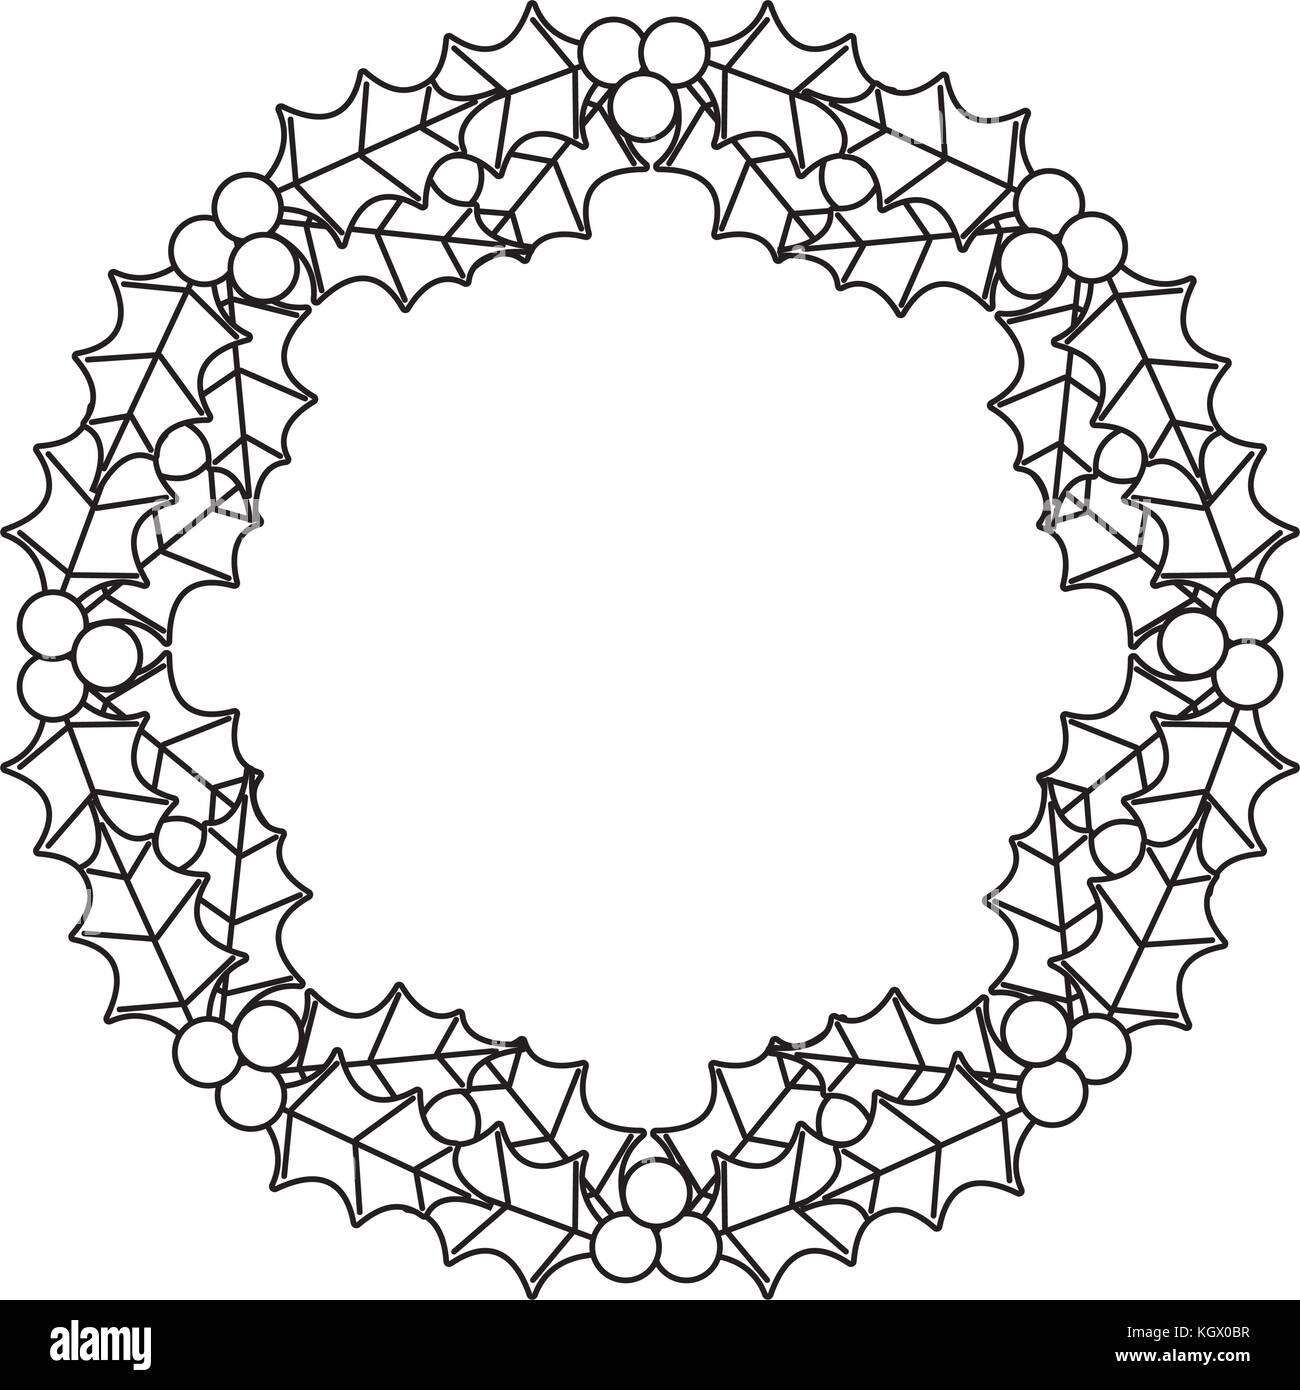 christmas wreath berries and fir leaves round frame stock vector art  christmas wreath berries and fir leaves round frame